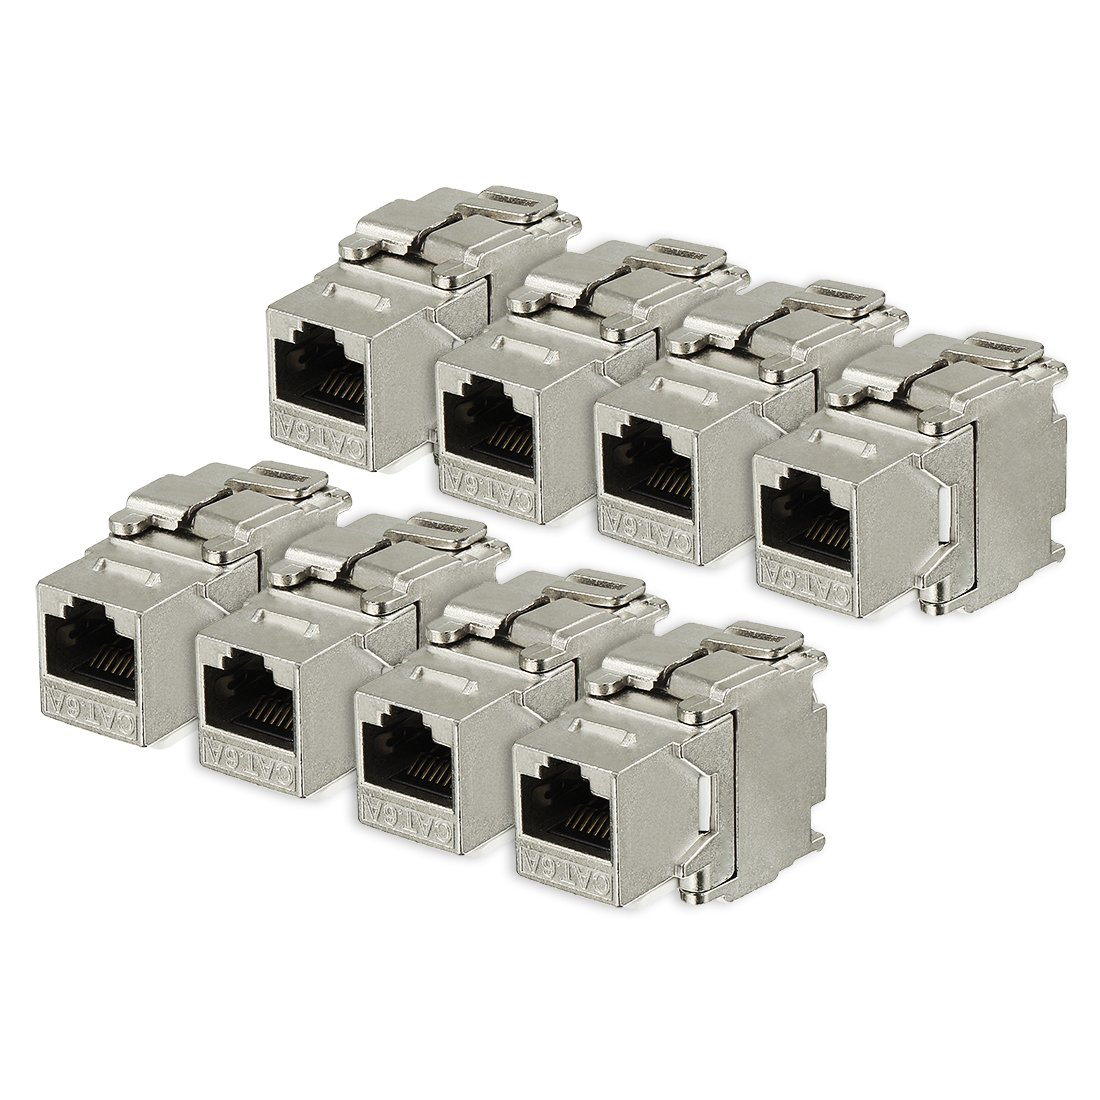 uxcell 8 Pack, 180 Degree Cat 6A RJ45 Ethernet Cable Keystone Jacks Metal Shielded in Silver